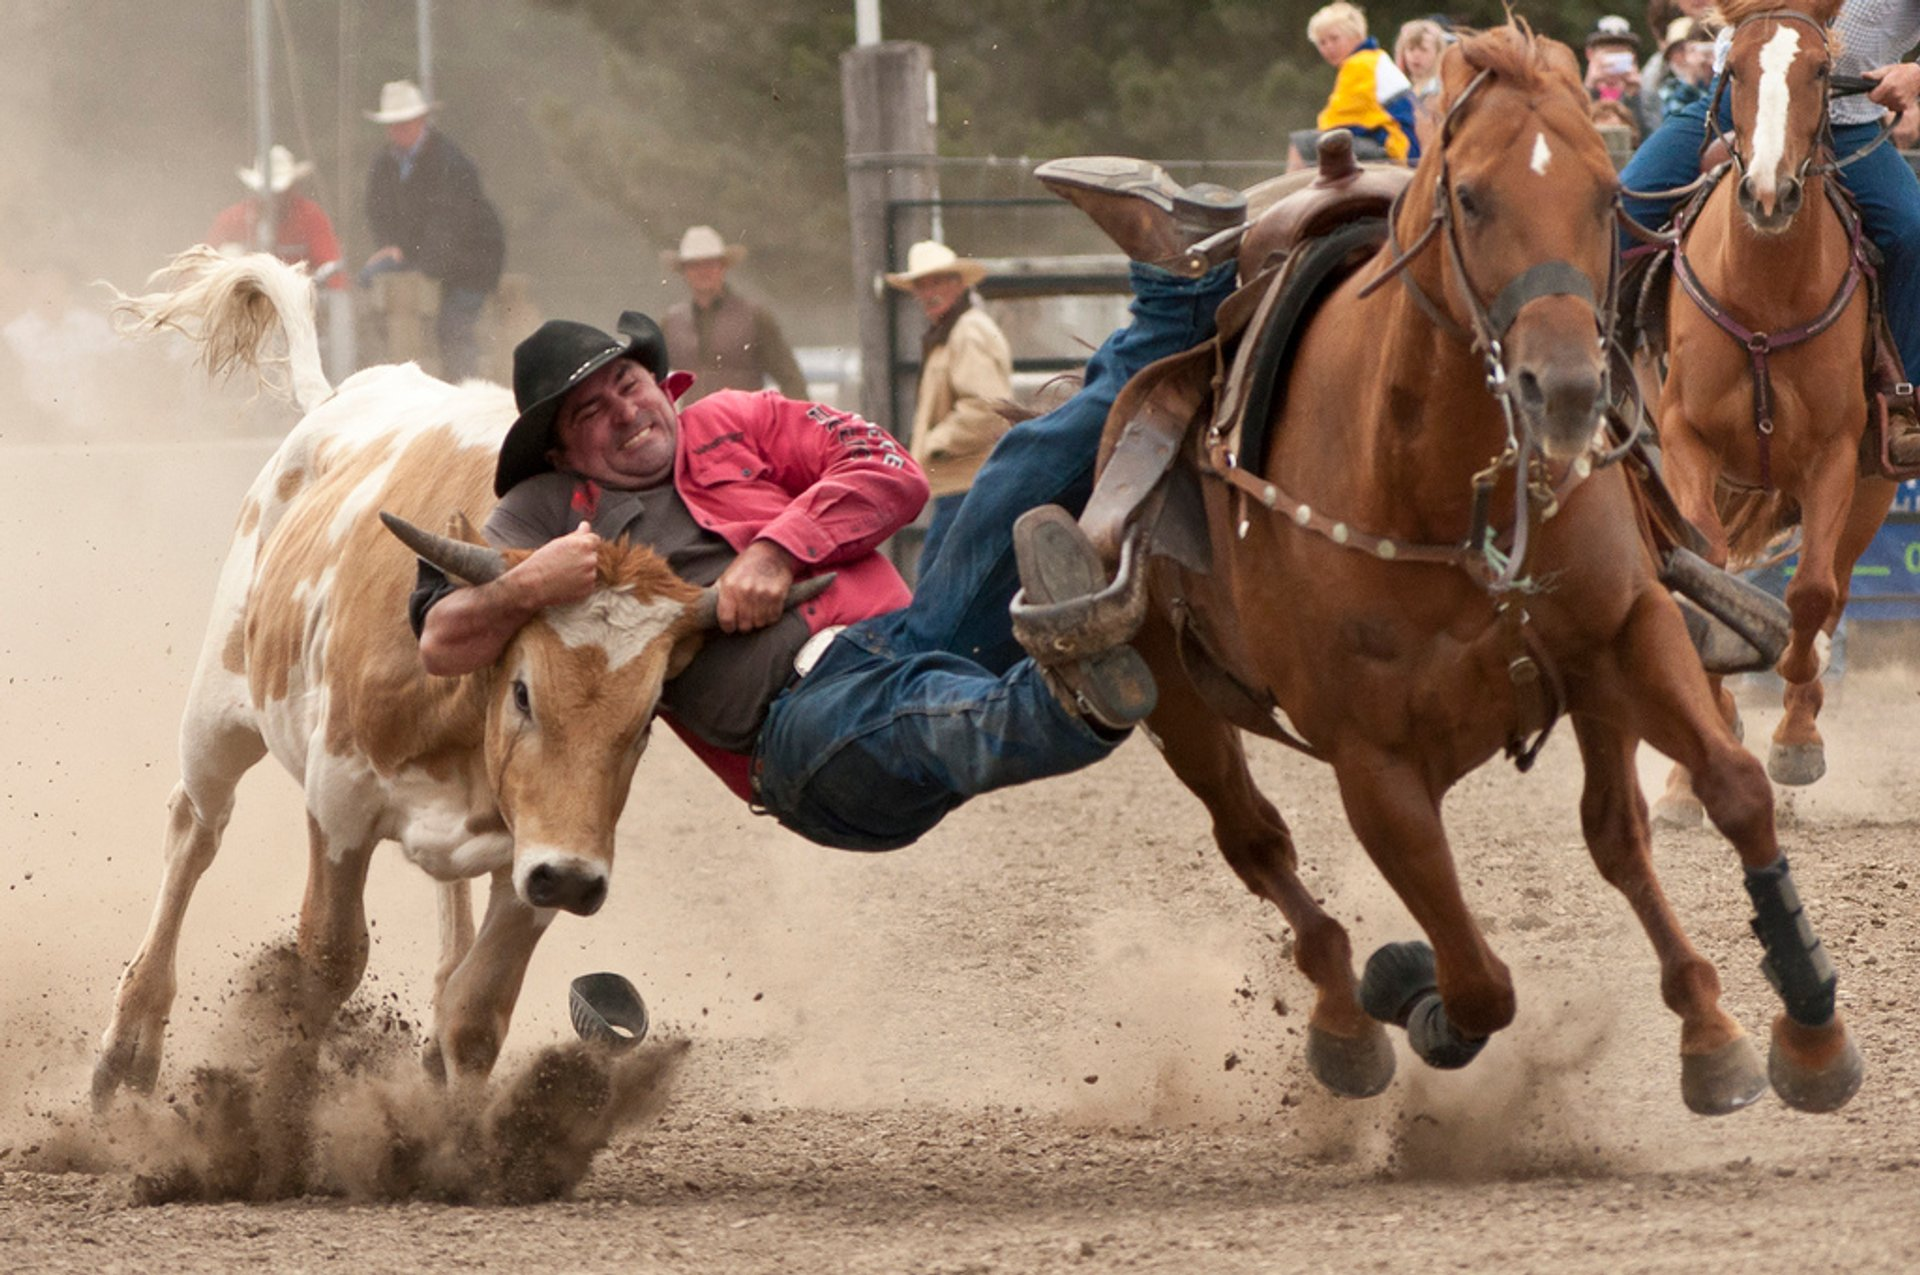 Rodeo in New Zealand - Best Season 2020